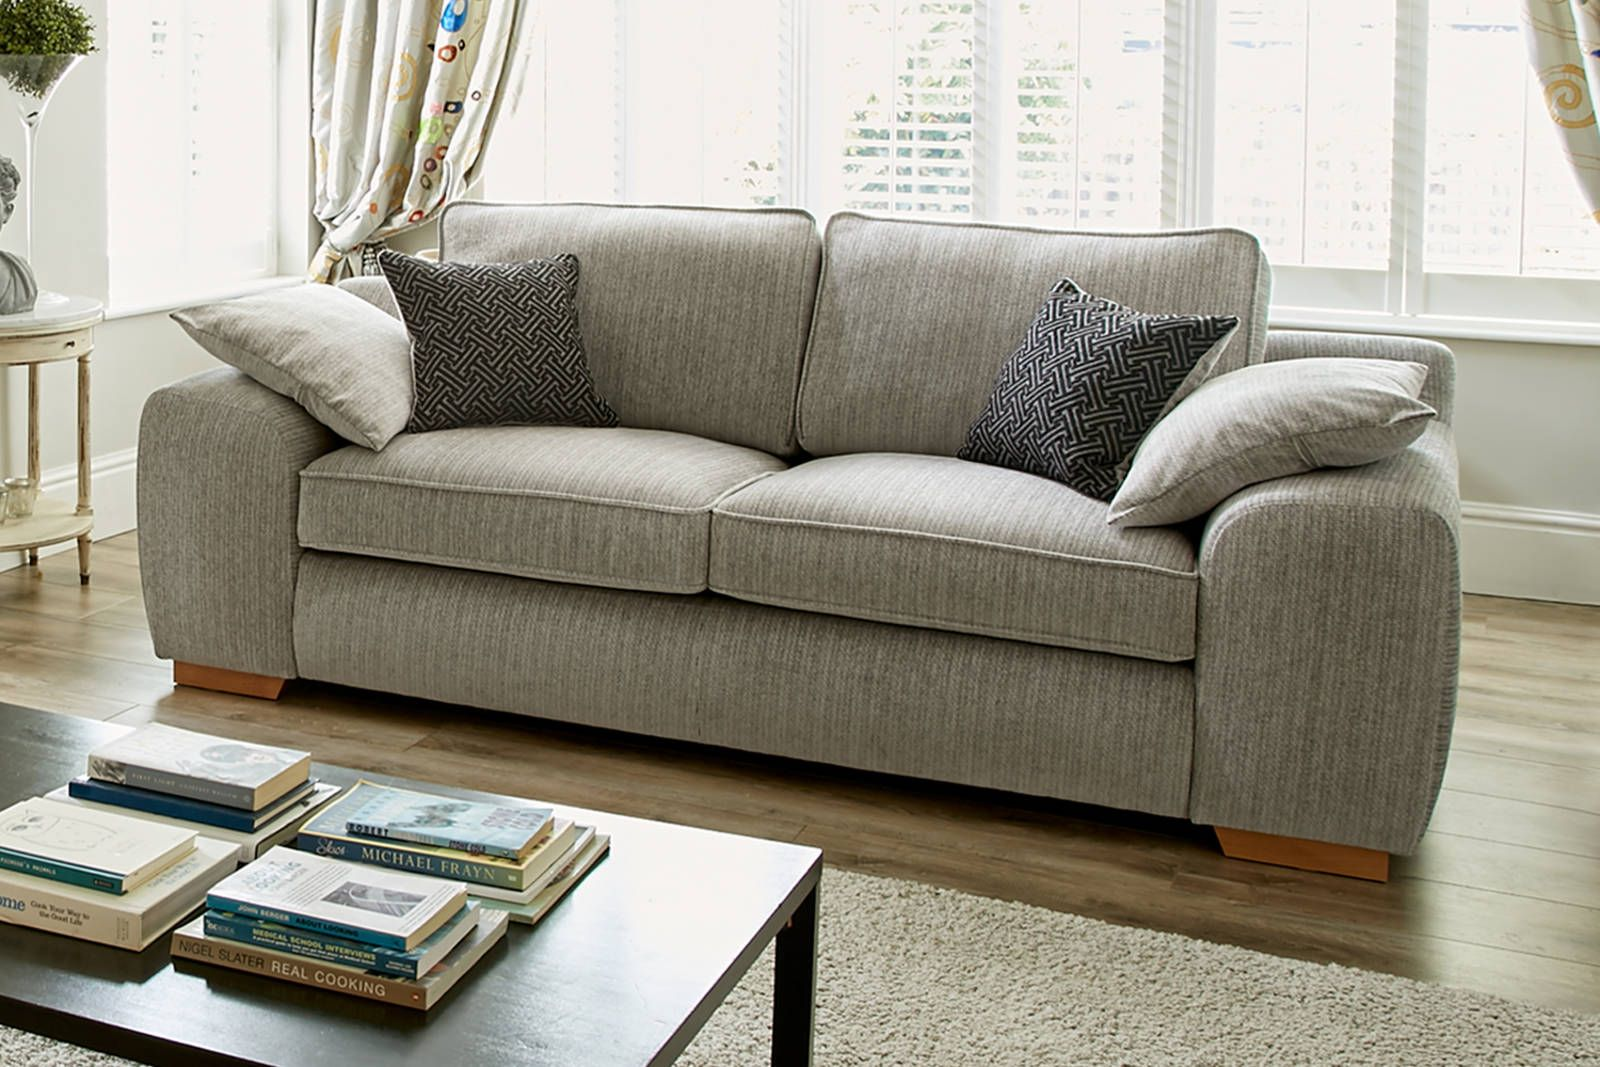 Sofa Warehouse Leicestershire Sectional With Double Chaise Sofology Corner Bed Brokeasshome